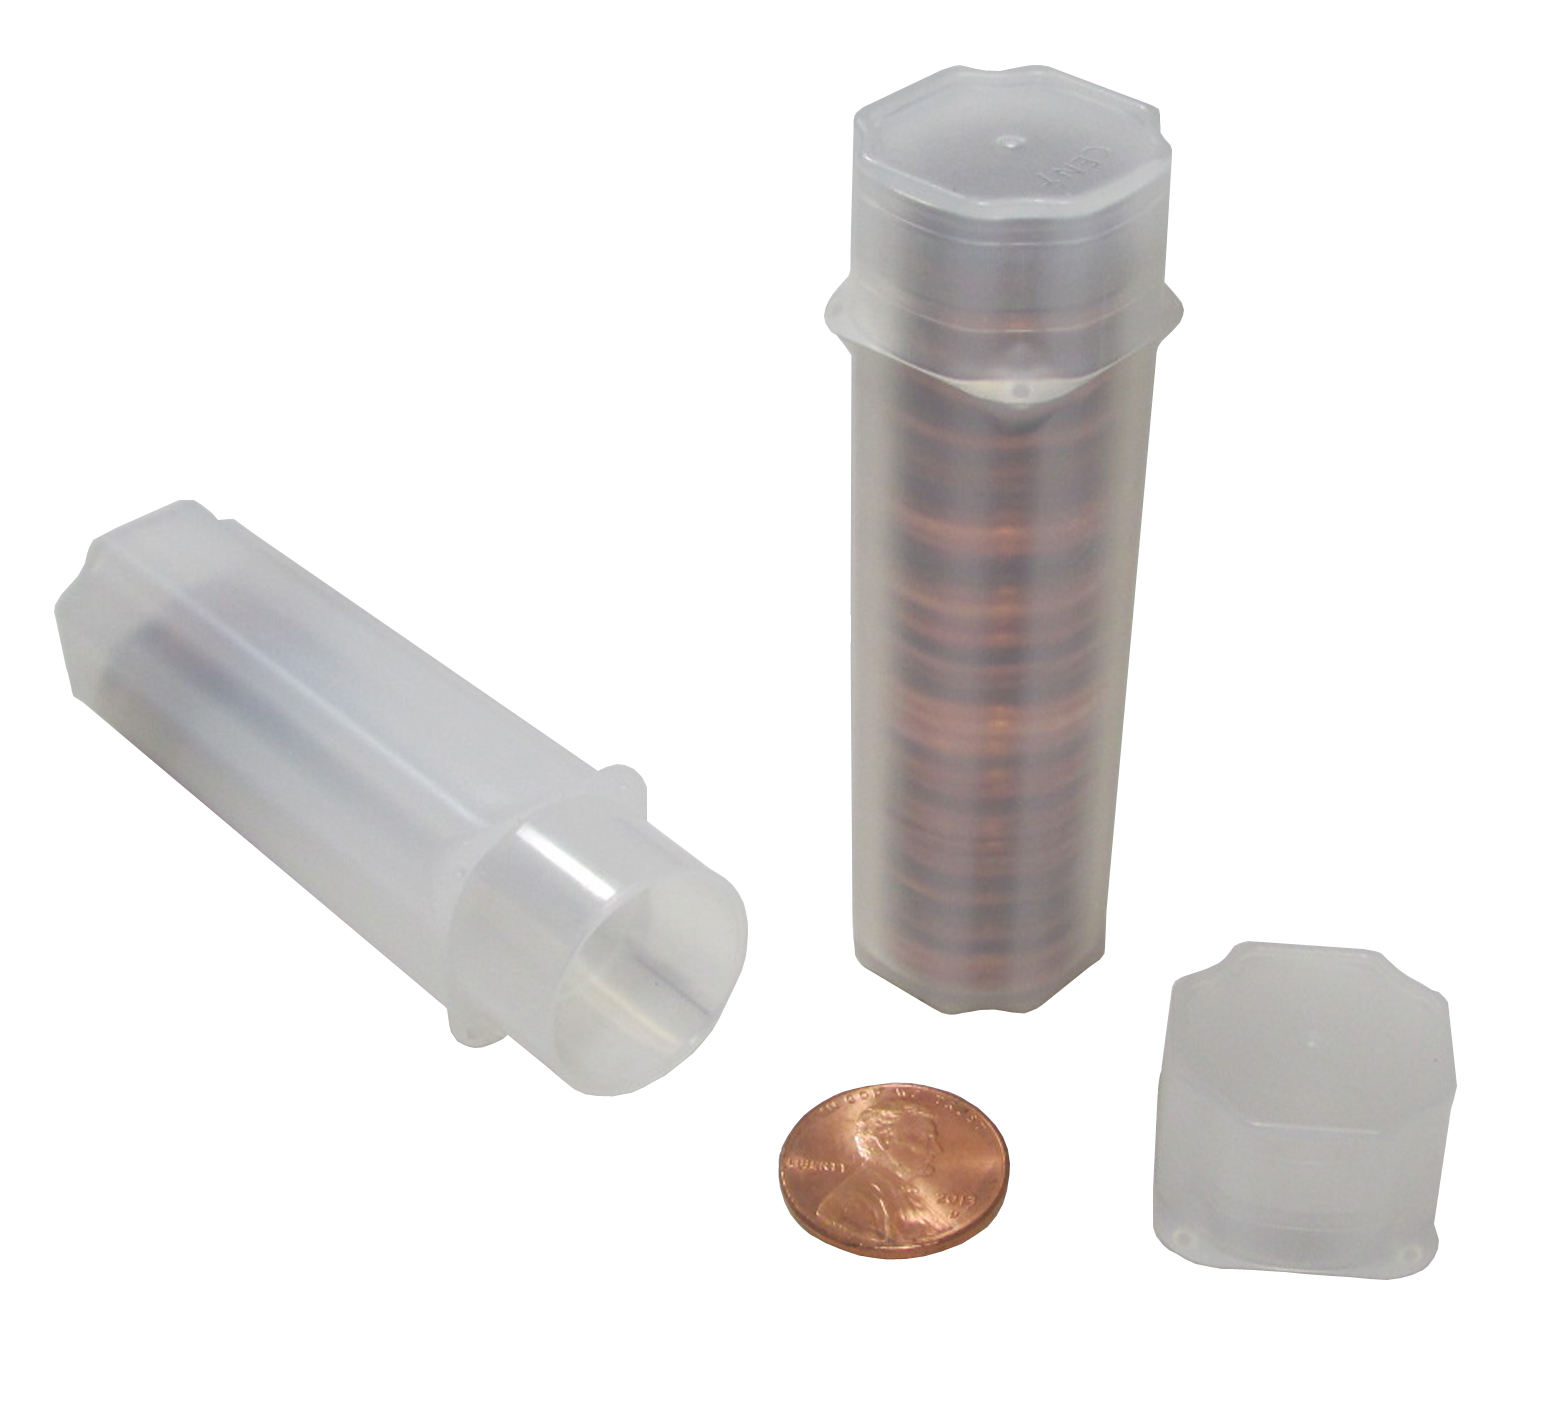 Penny Cent Square Coin Tubes by Guardhouse 19mm 5 pack Free Shipping USA